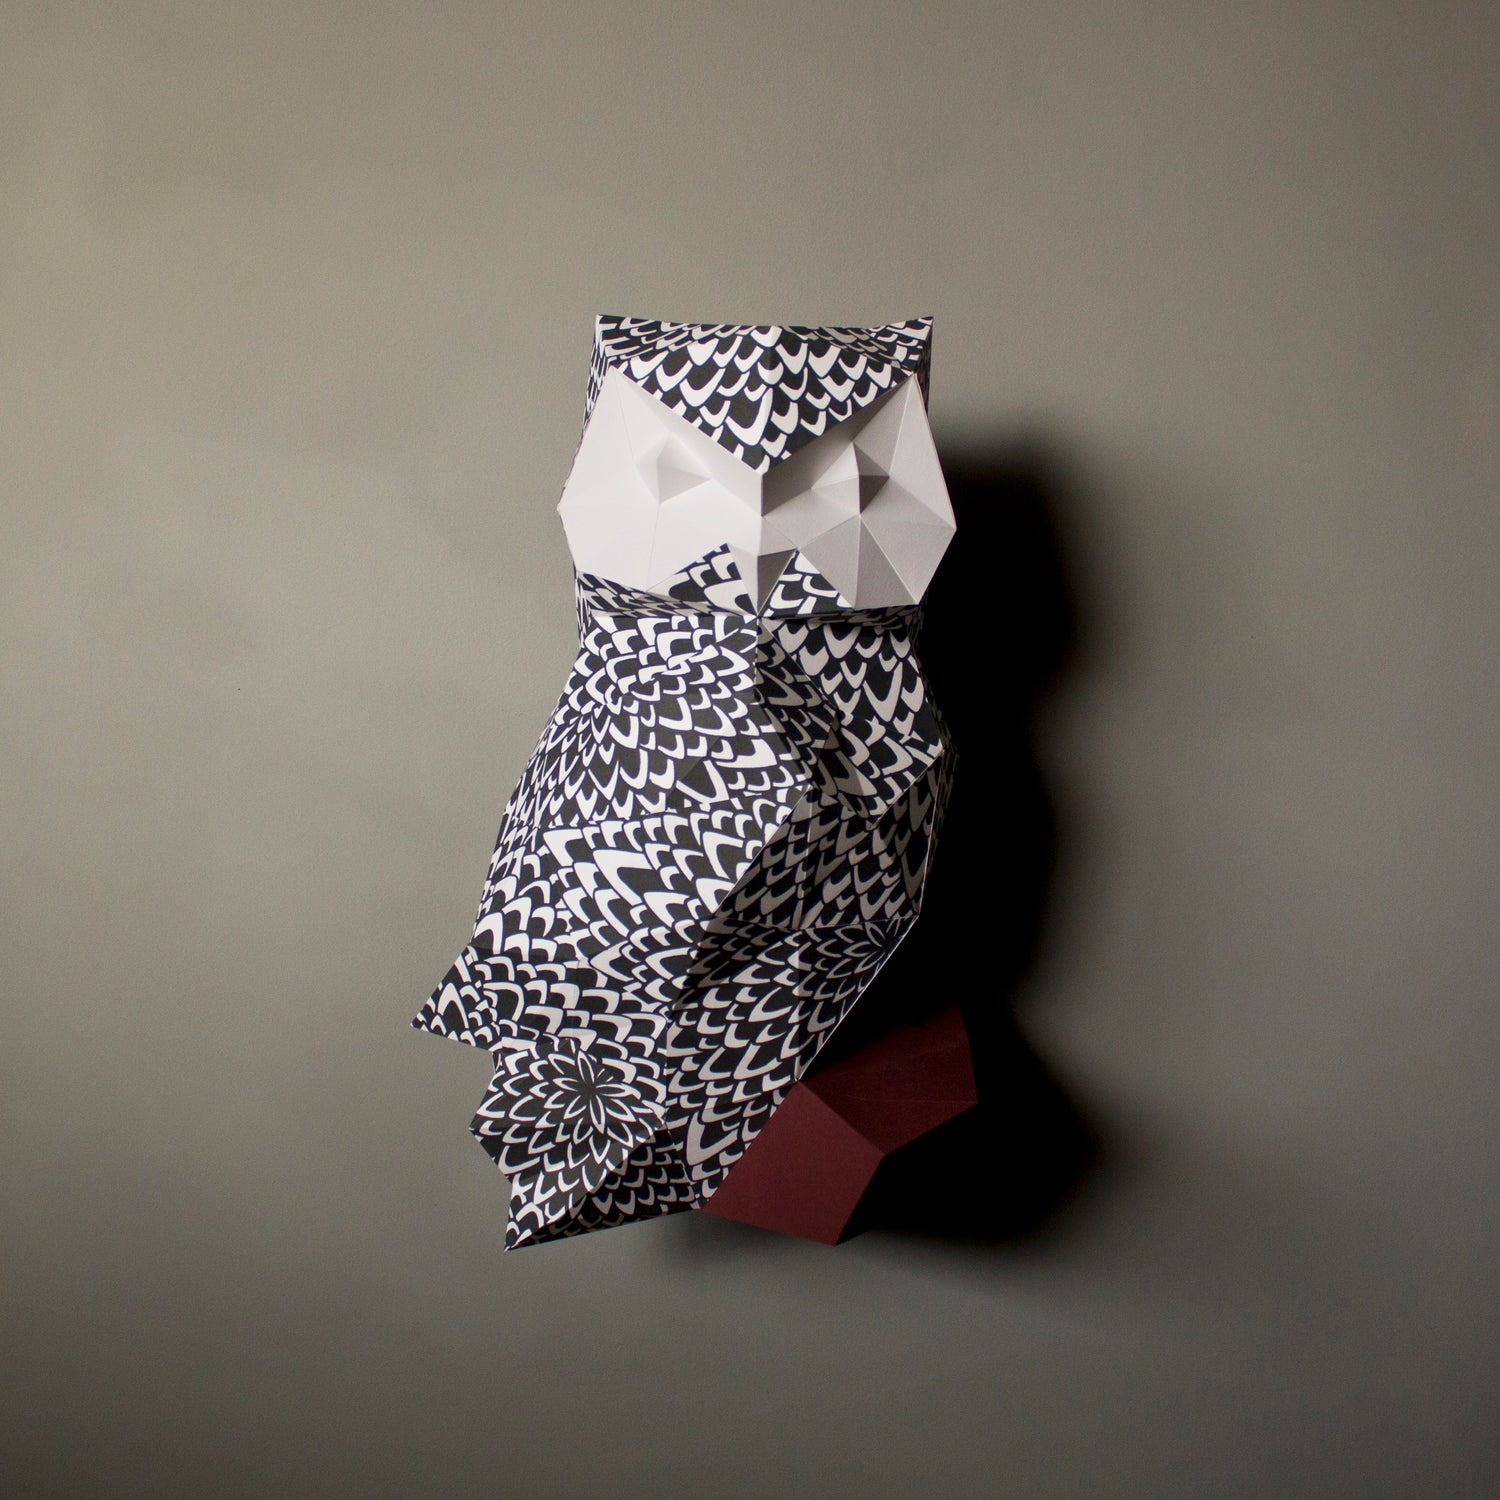 James the Feathered Owl | DIY Papercraft Animal Kit